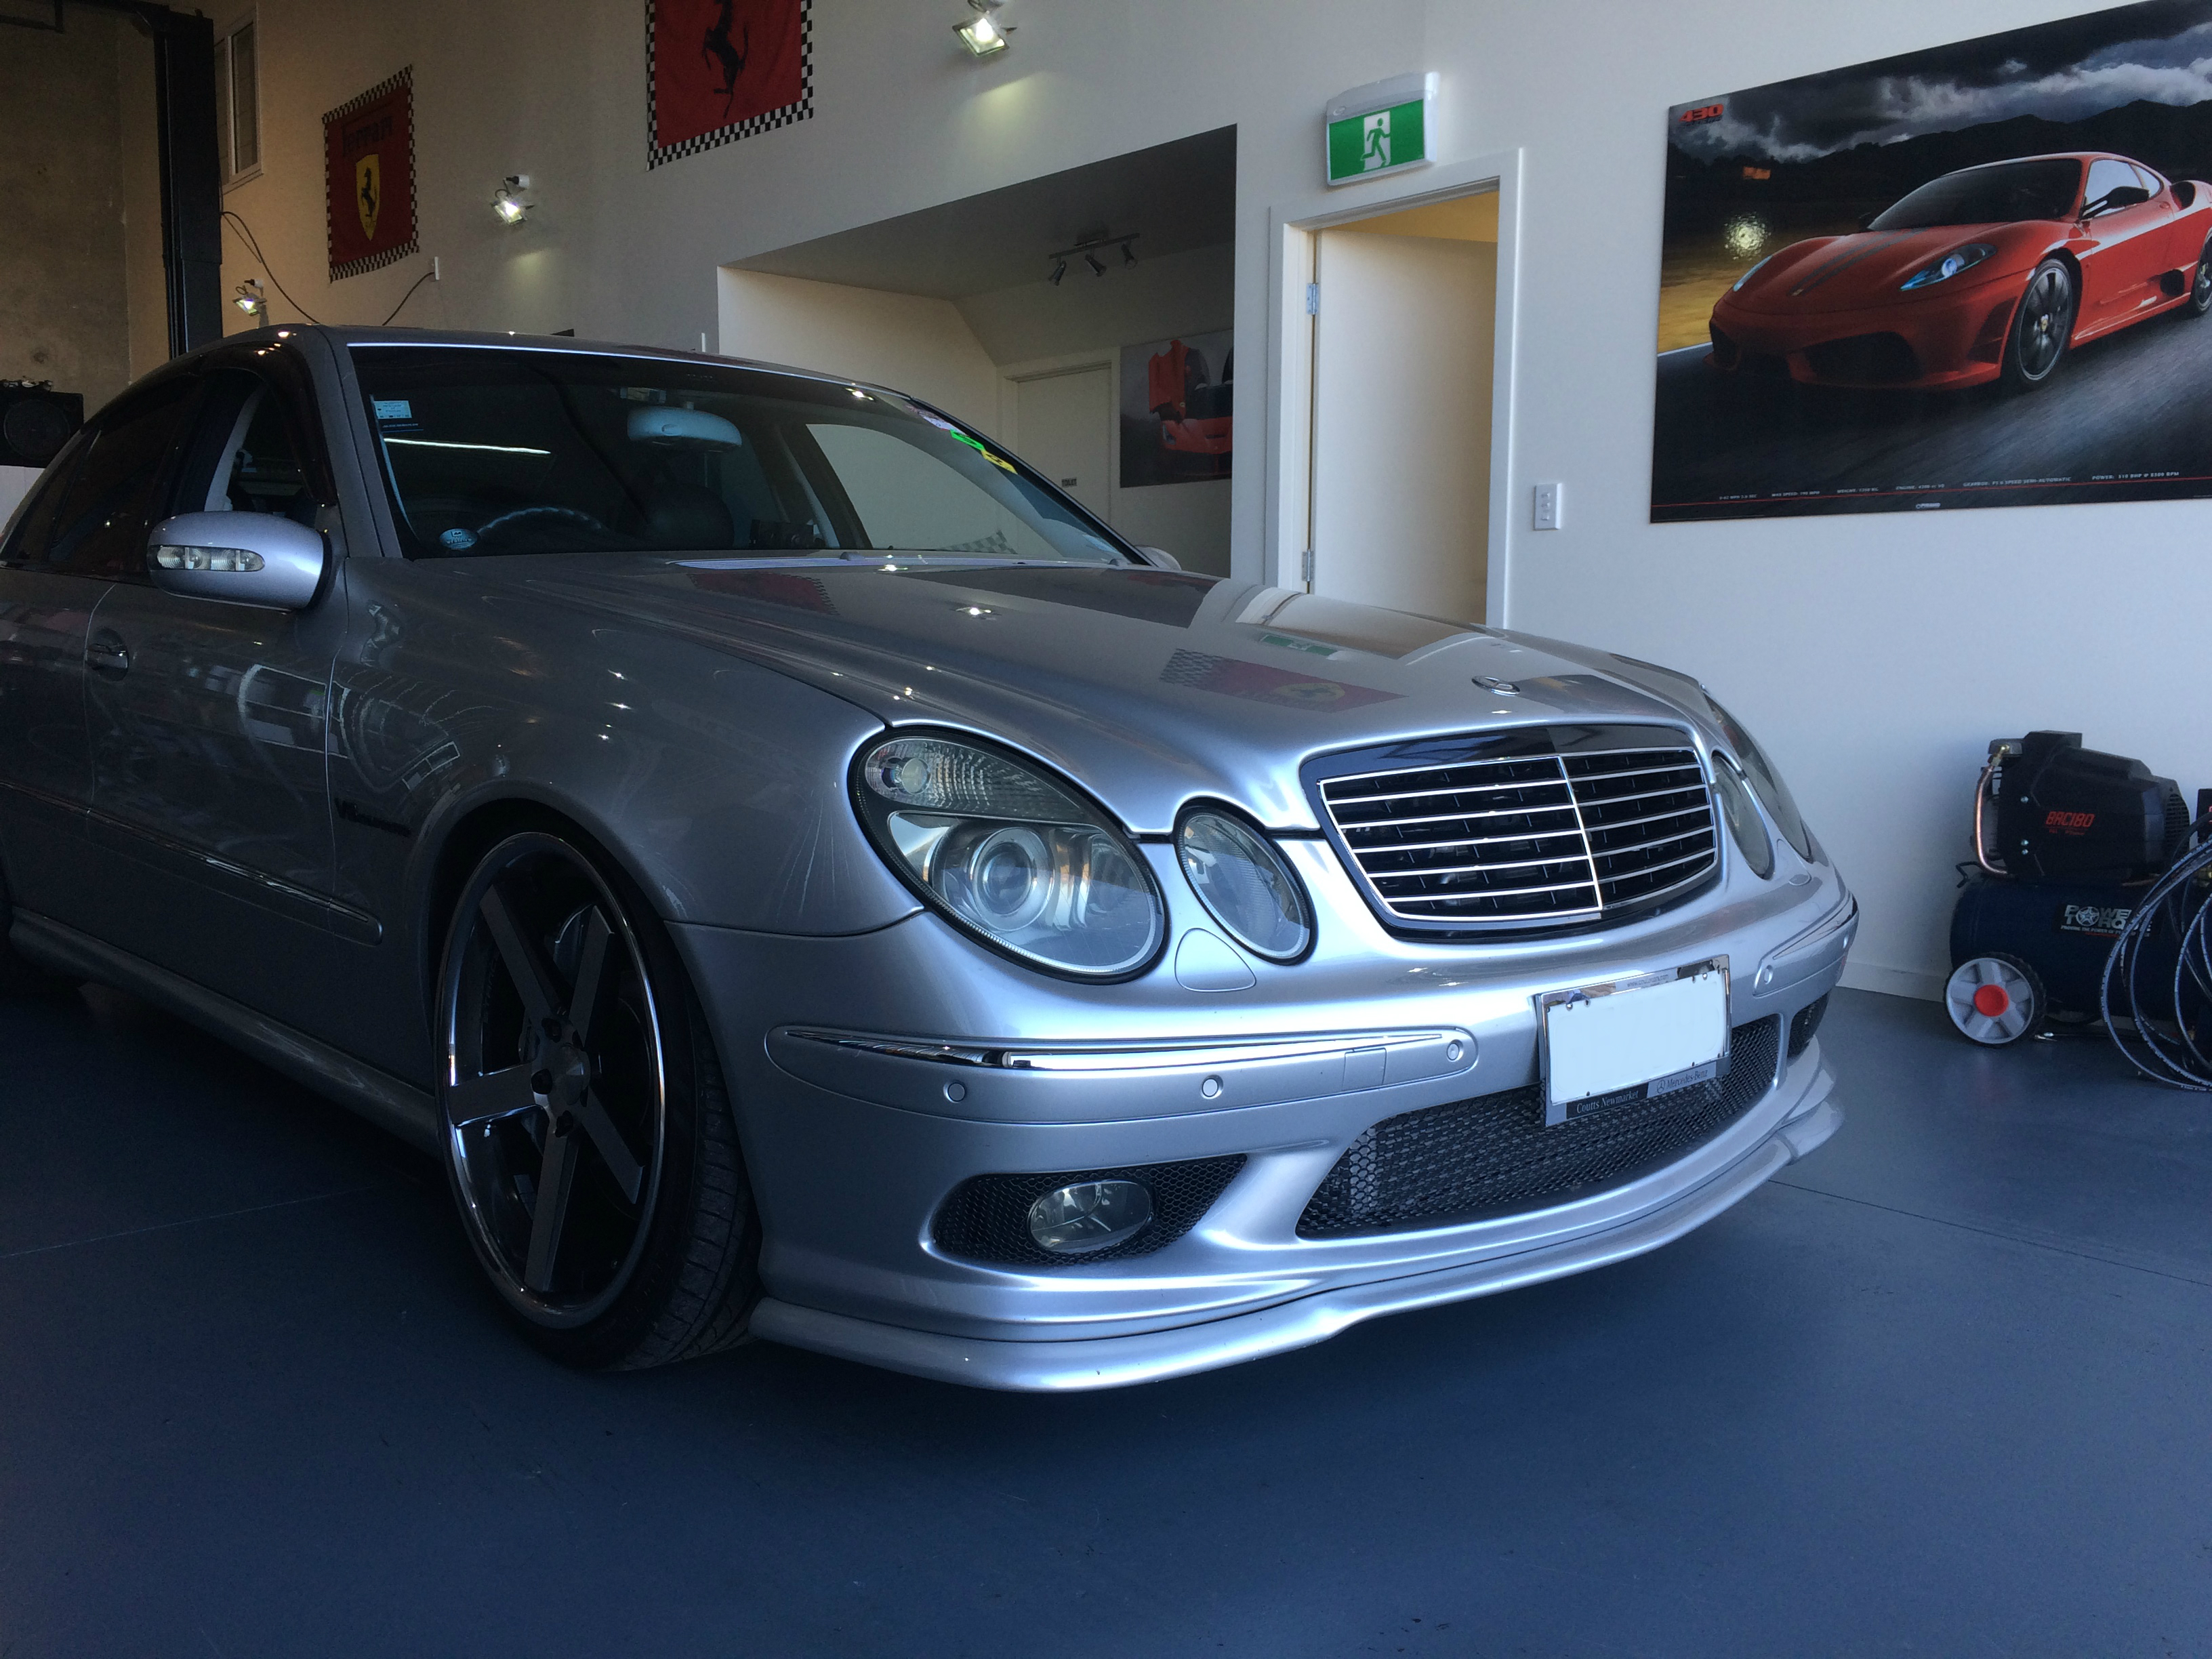 e55 amg w211 v8 supercharged power torque nz proving the power of performance new. Black Bedroom Furniture Sets. Home Design Ideas